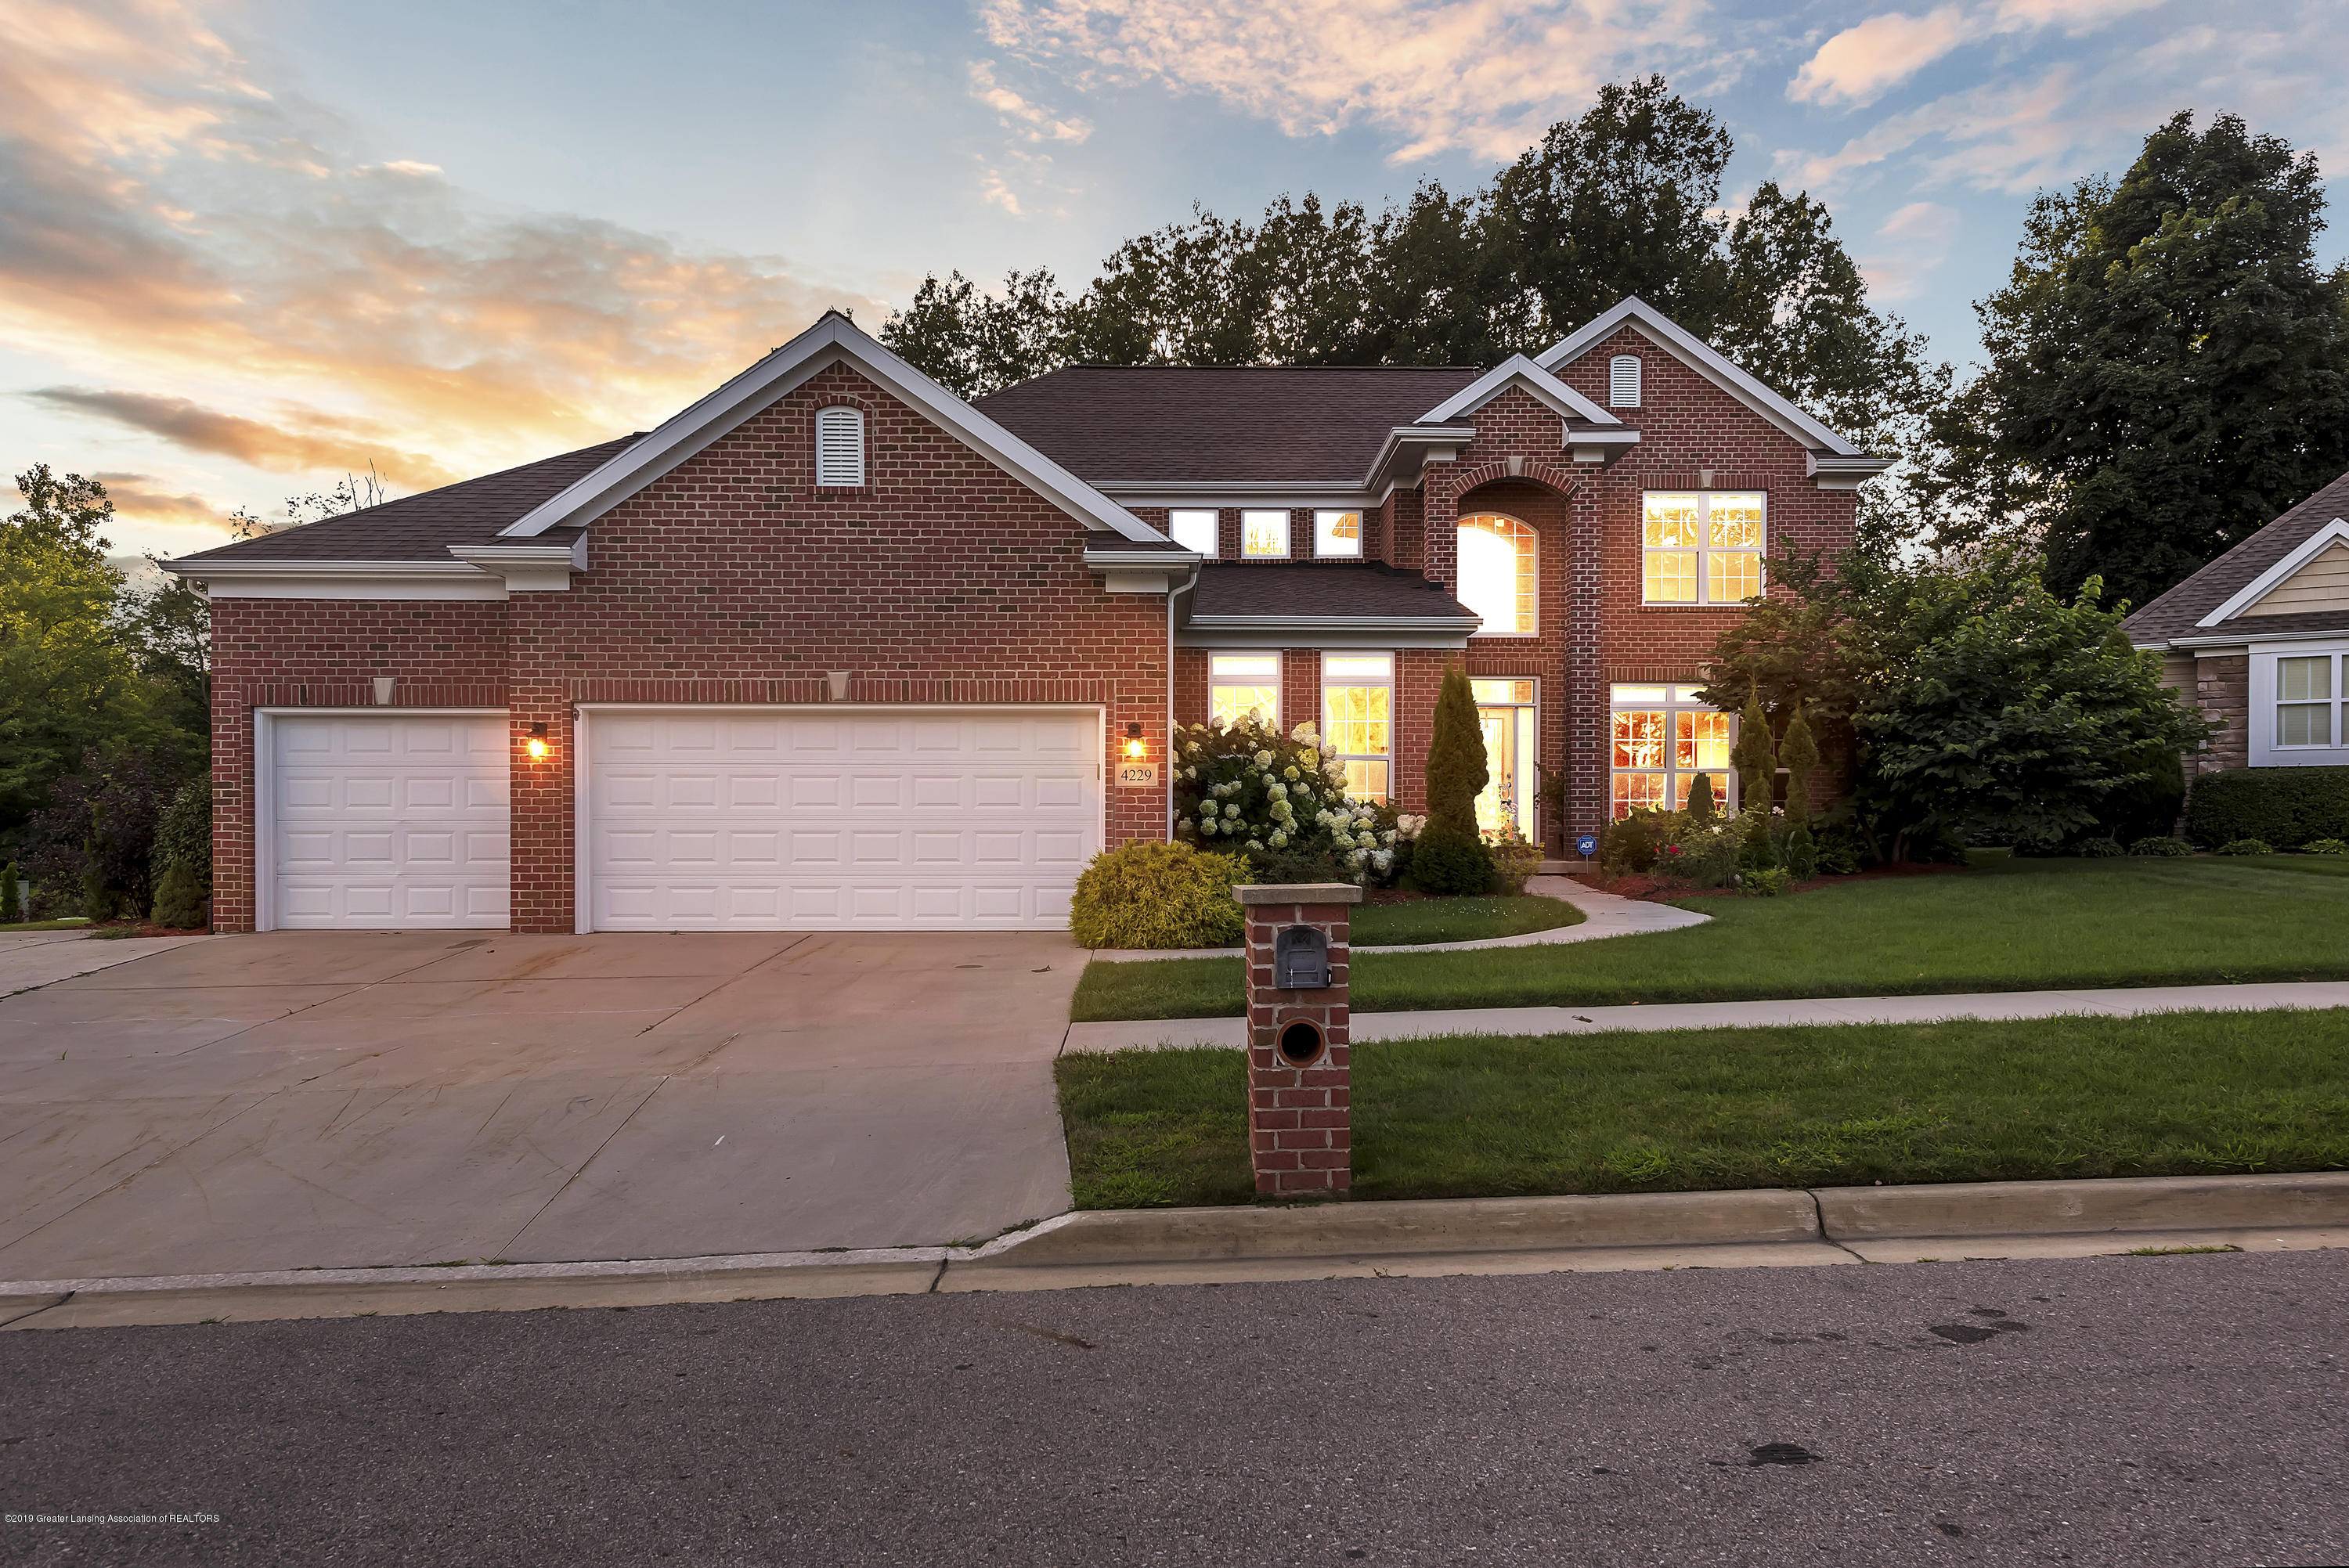 4229 Rain Forest Cir - 4229-Rainforest-Circle-Okemos-MI-windows - 1